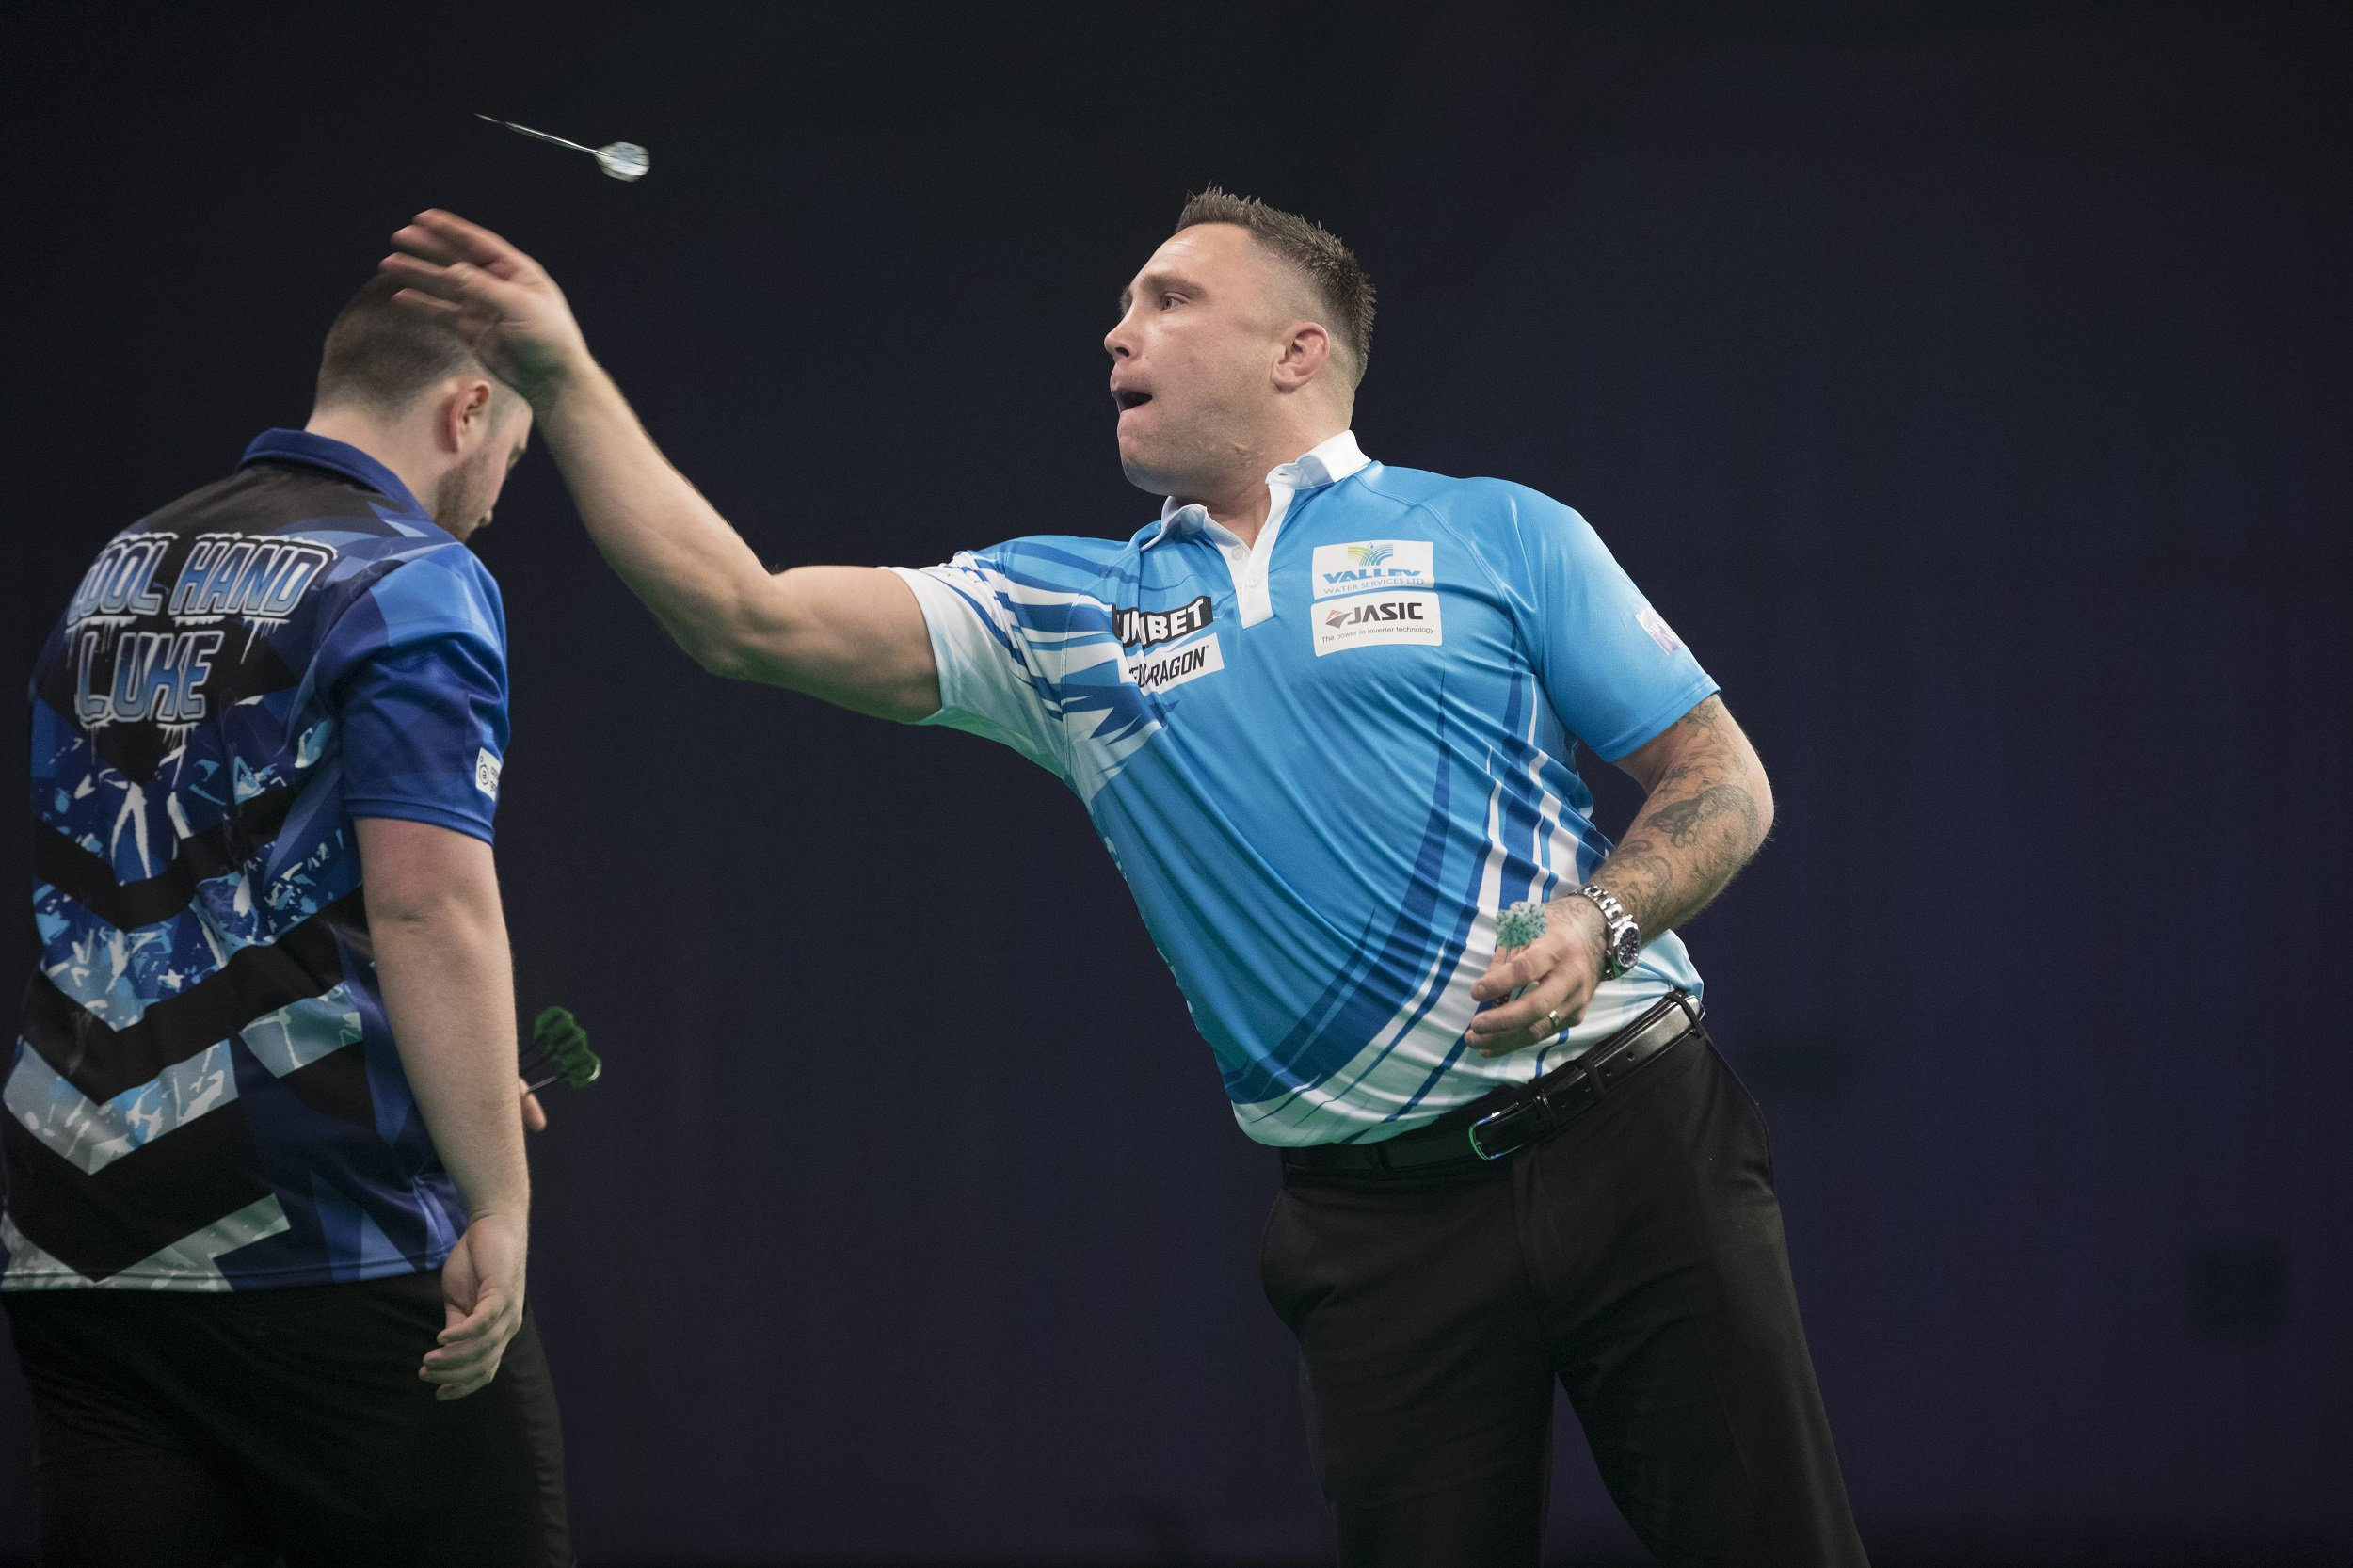 UNIBET PREMIER LEAGUE 2019 WESTPOINT ARENA EXETER PIC LAWRENCE LUSTIG LUKE HUMPHRIES V GERWYN PRICE GERWYN PRICE IN ACTION